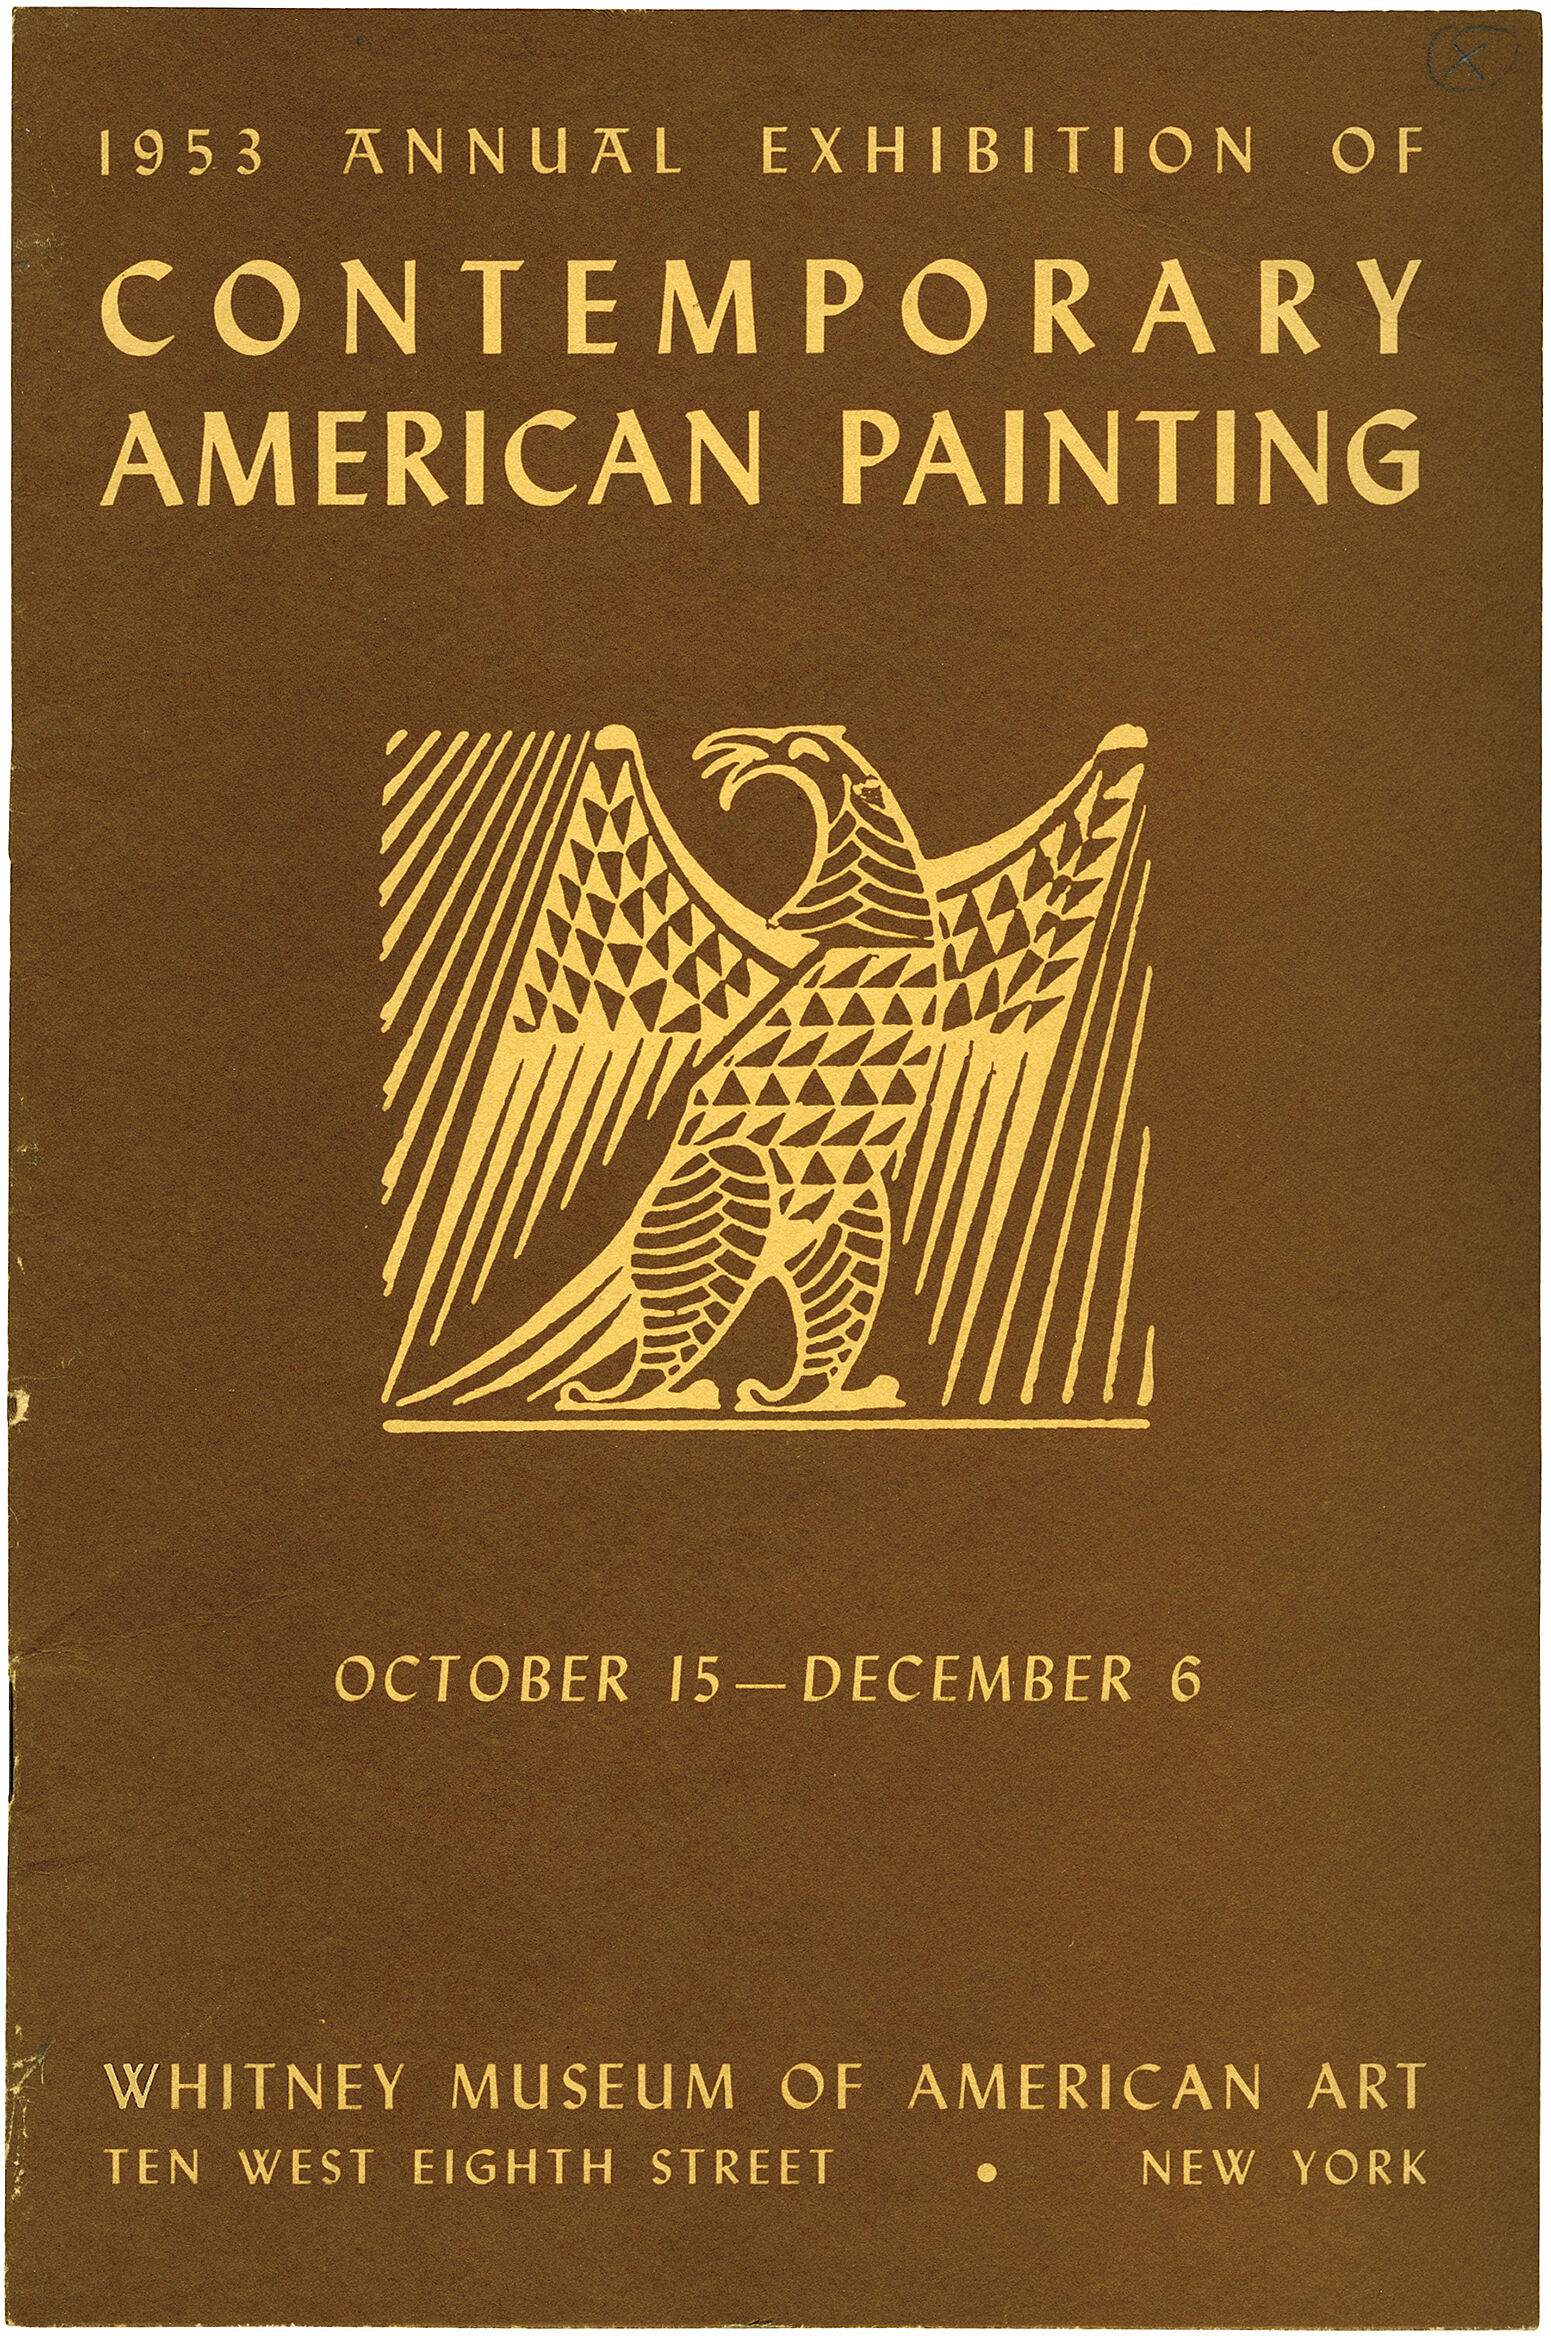 Cover for 1953 Annual Exhibition of Contemporary American Painting catalogue